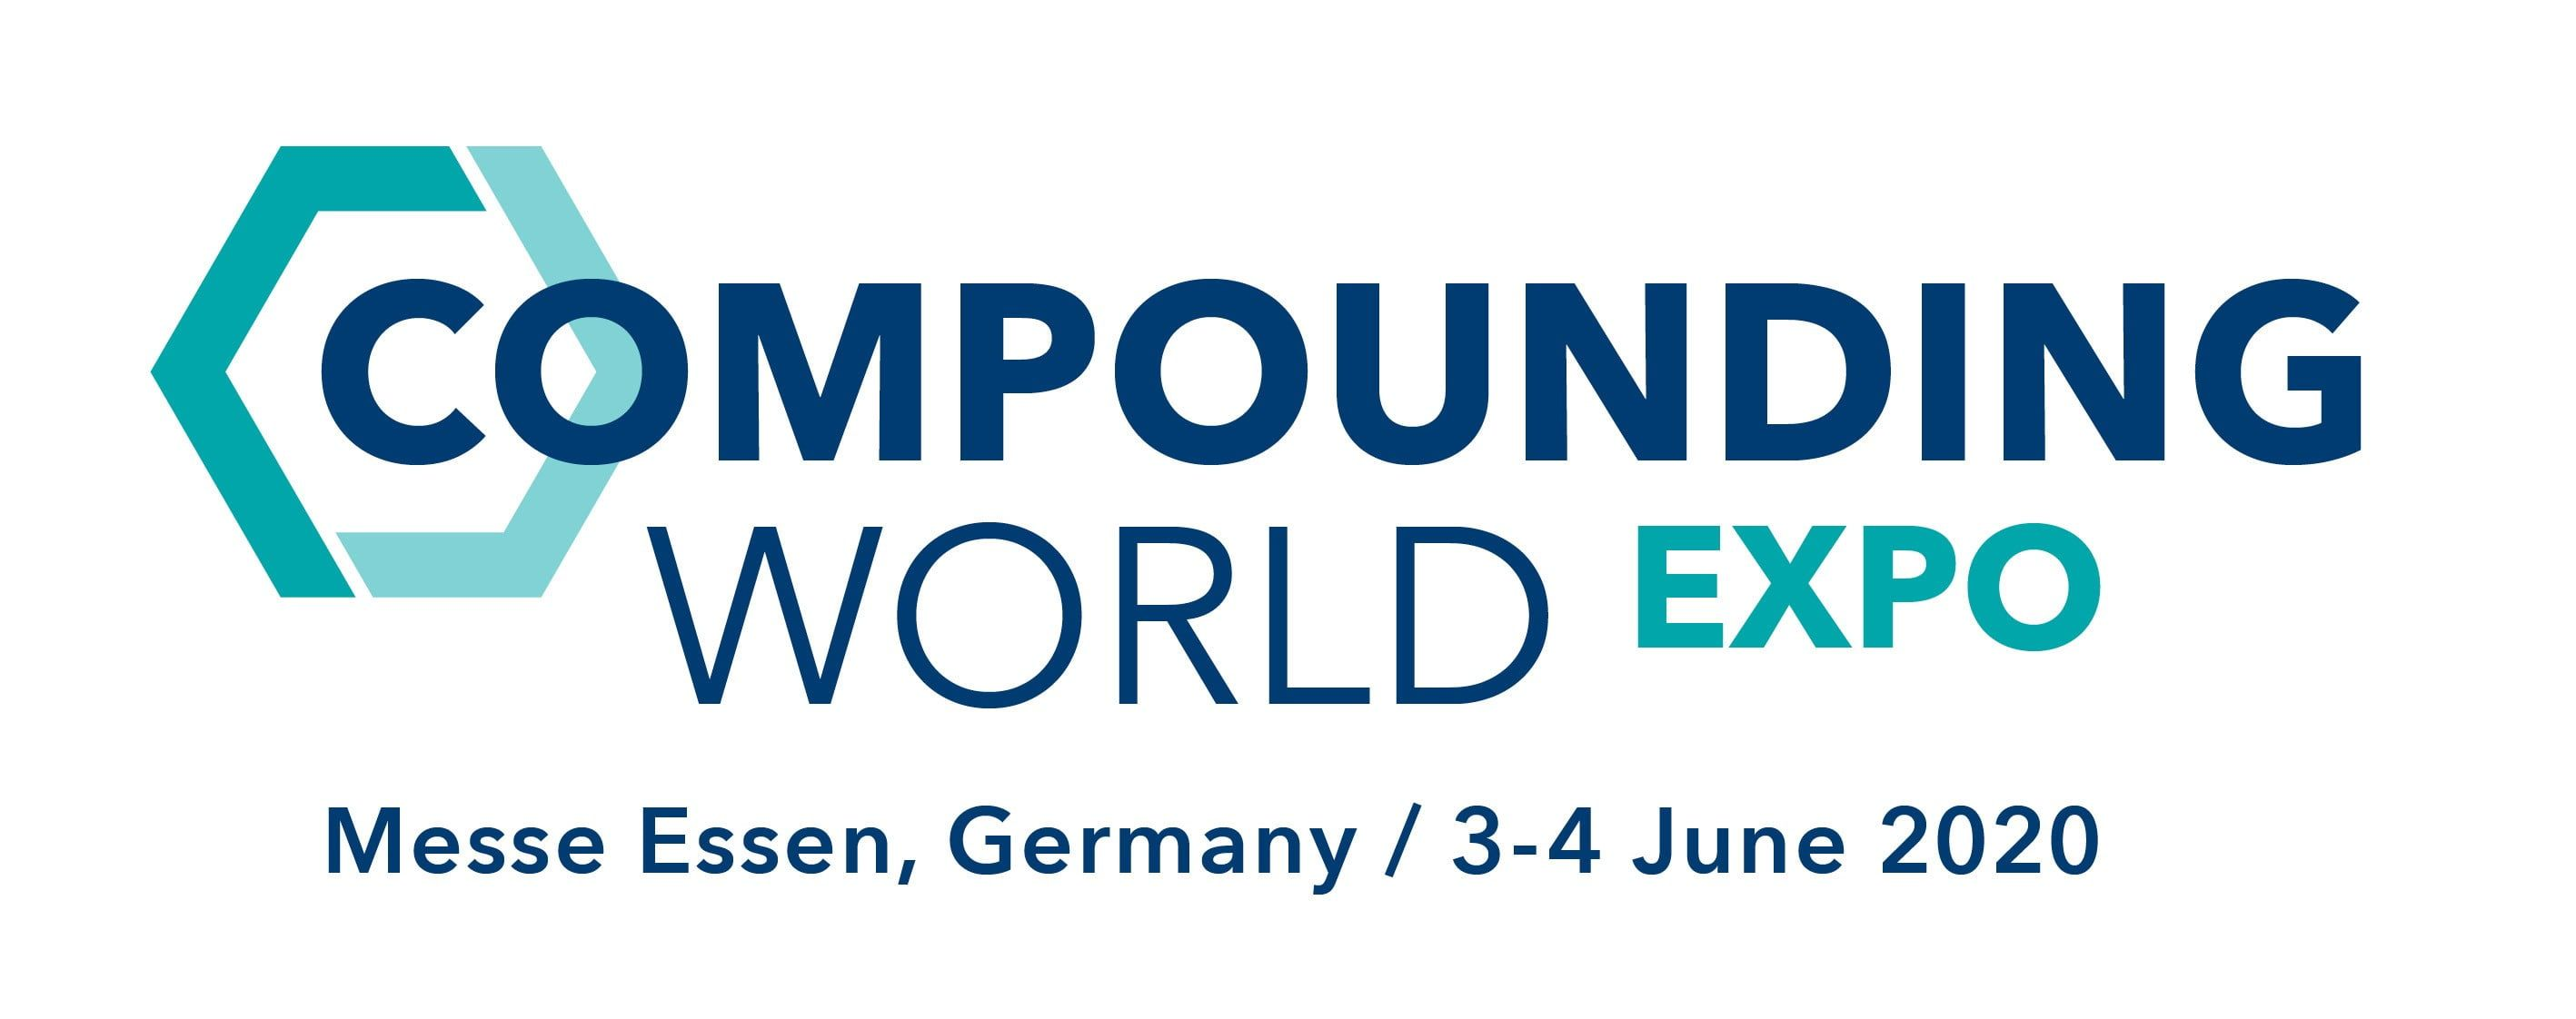 Logo Compounding World Expo 2020 Essen